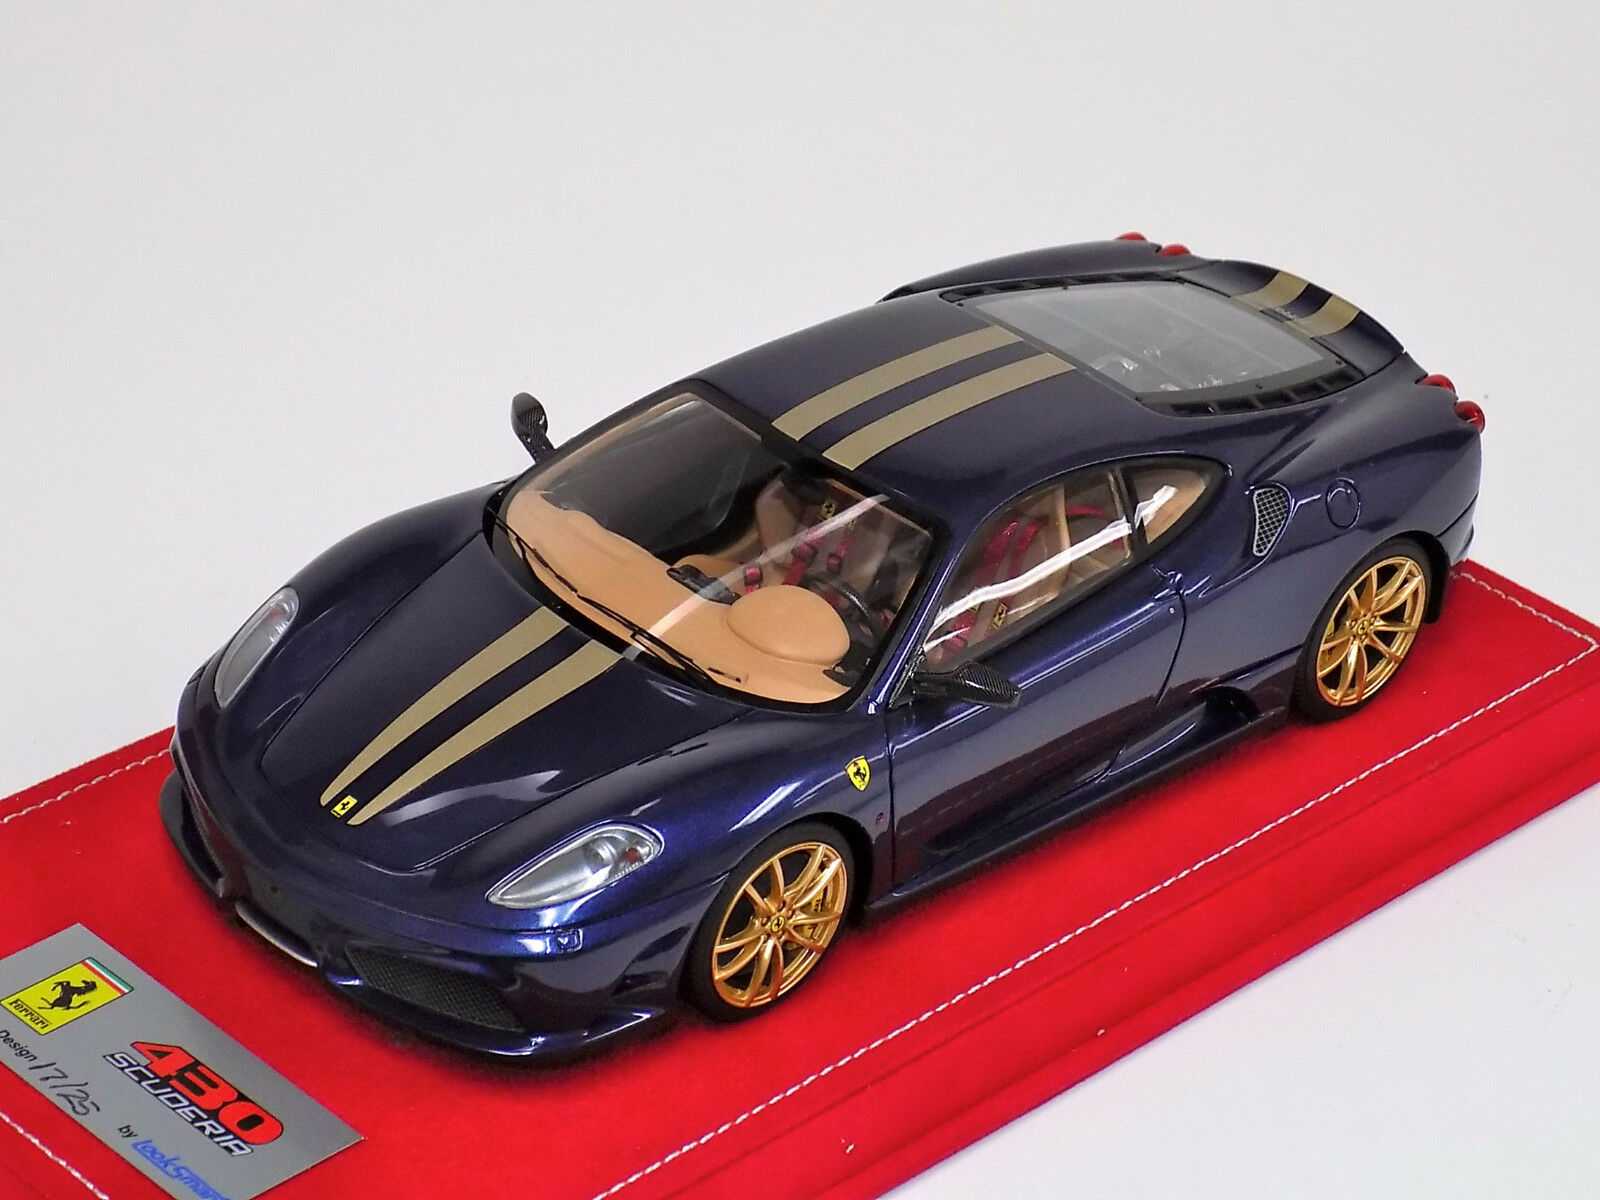 1 18 Looksmart Ferrari F430 Scuderia bluee tdf gold stripe gold Wheels Alcantara